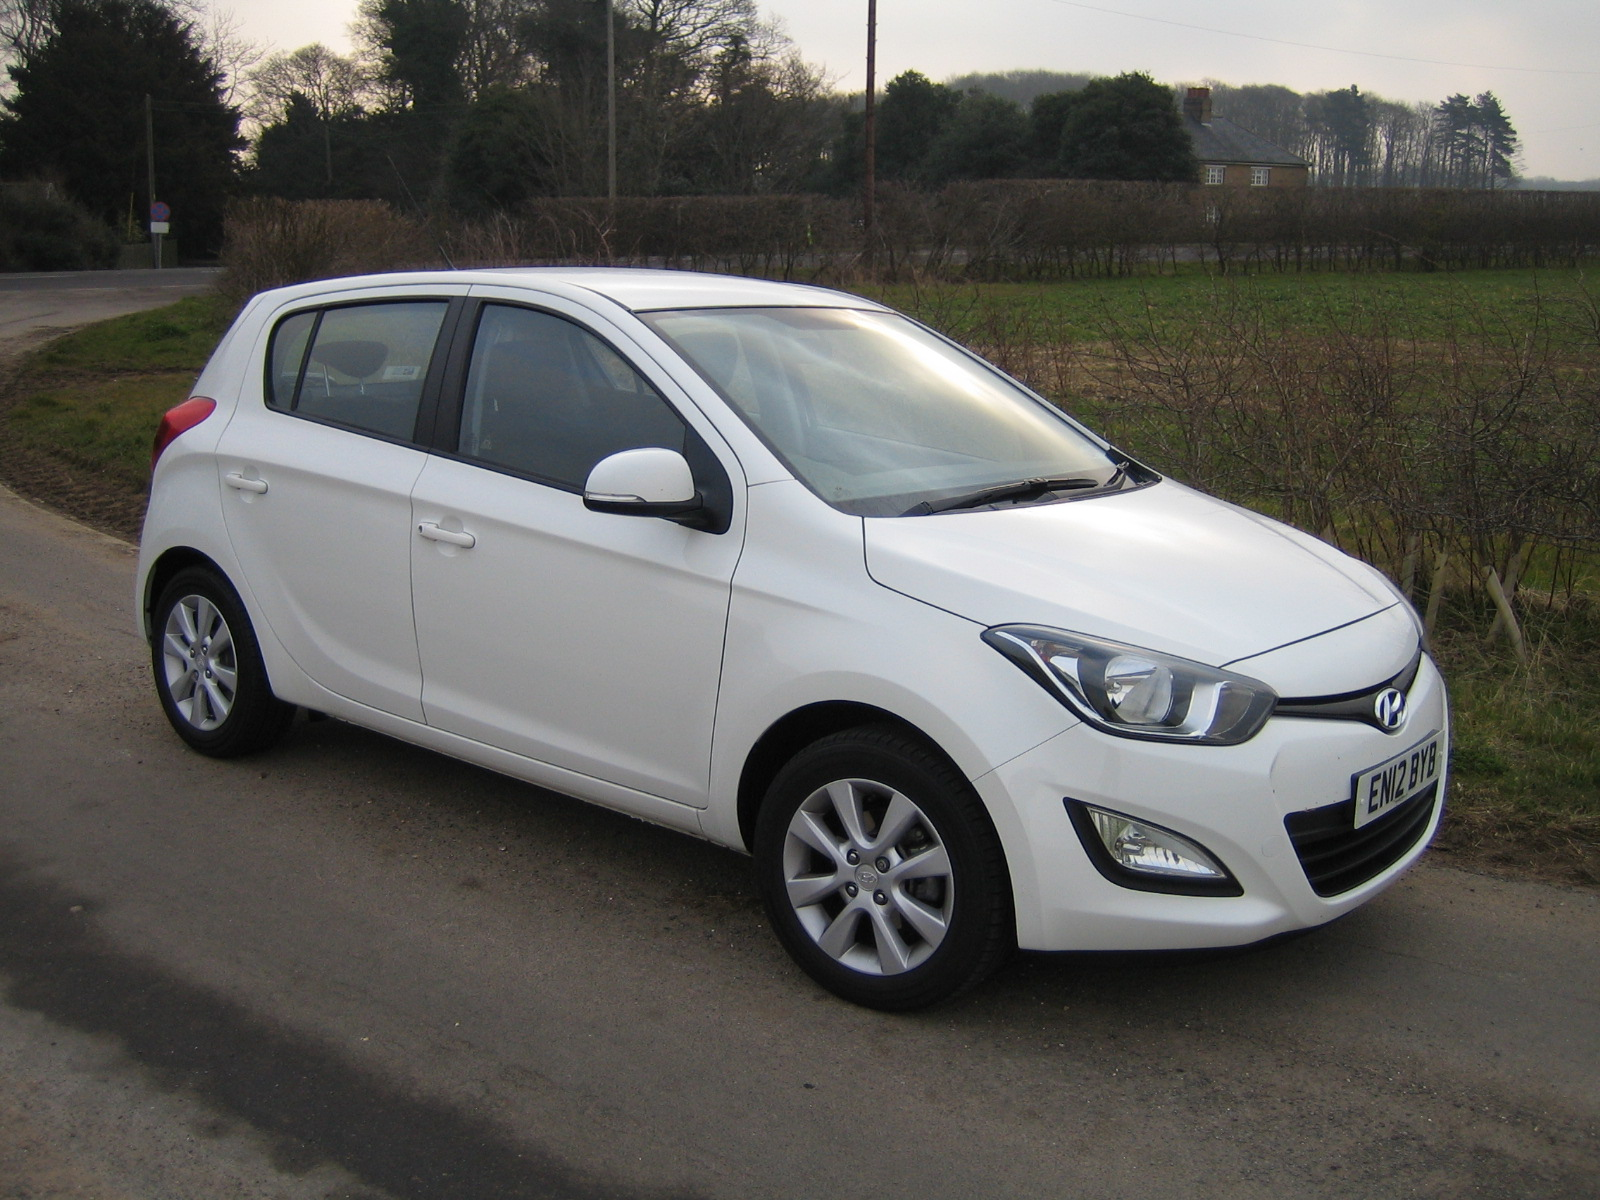 hyundai i20 1 1 crdi road test proves frugality of three cylinders. Black Bedroom Furniture Sets. Home Design Ideas